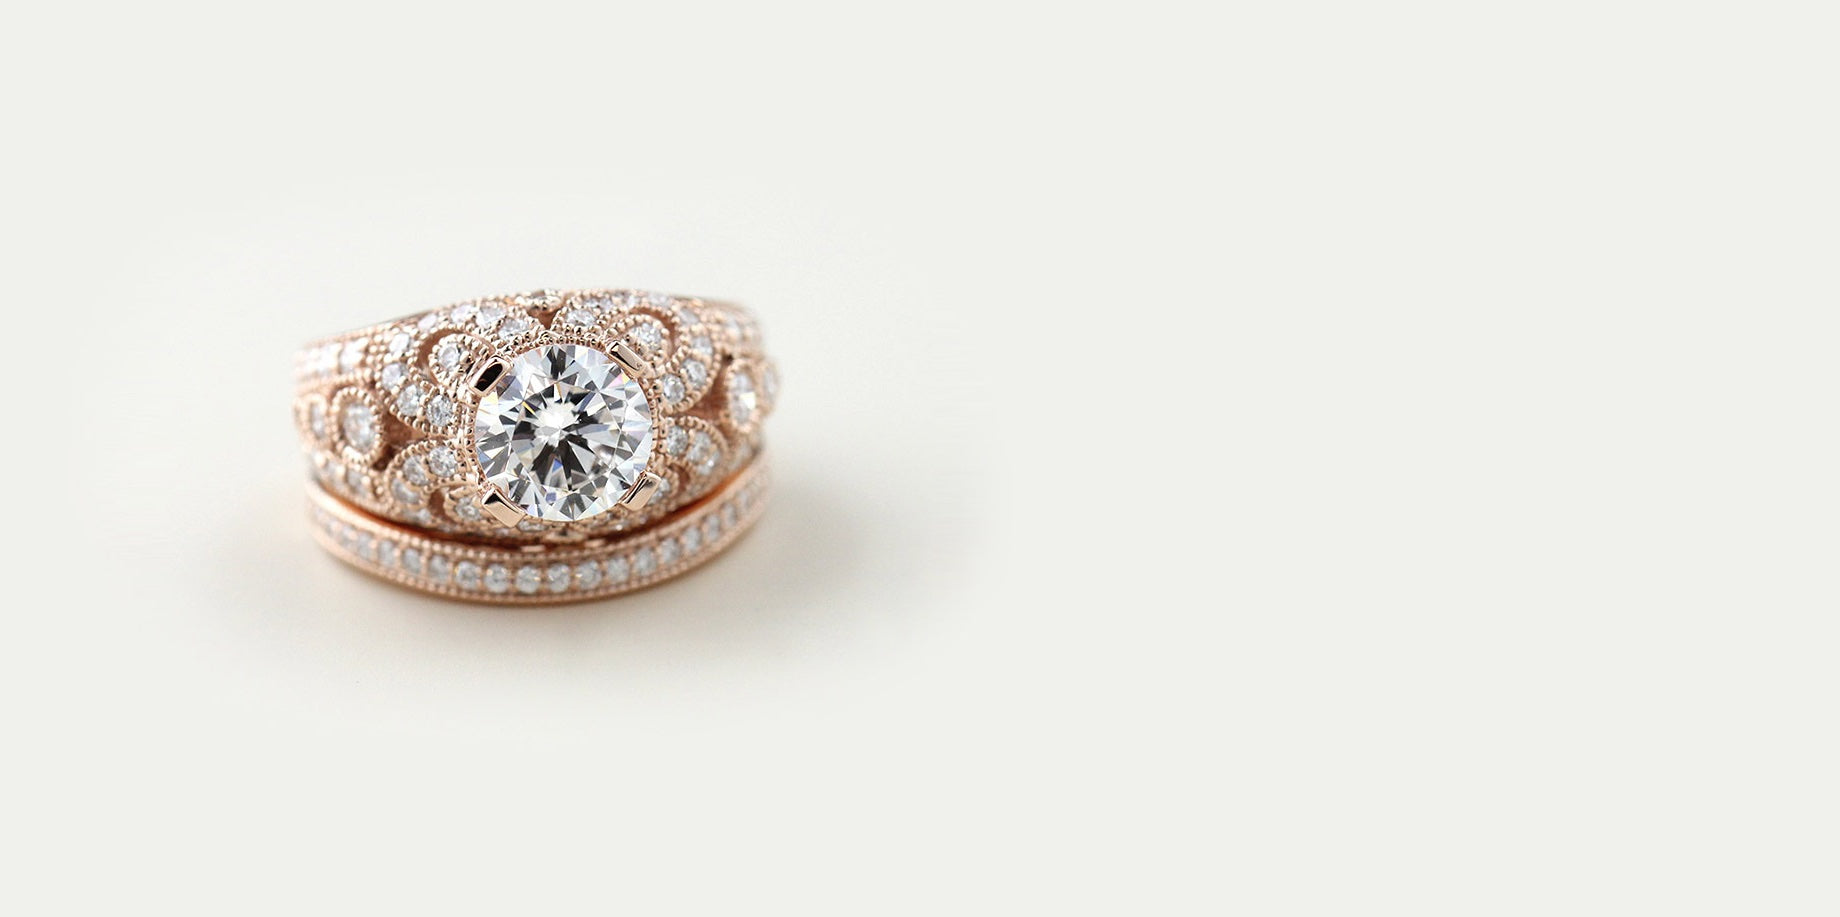 The Worlds Most Ethical Diamonds and Engagement Rings